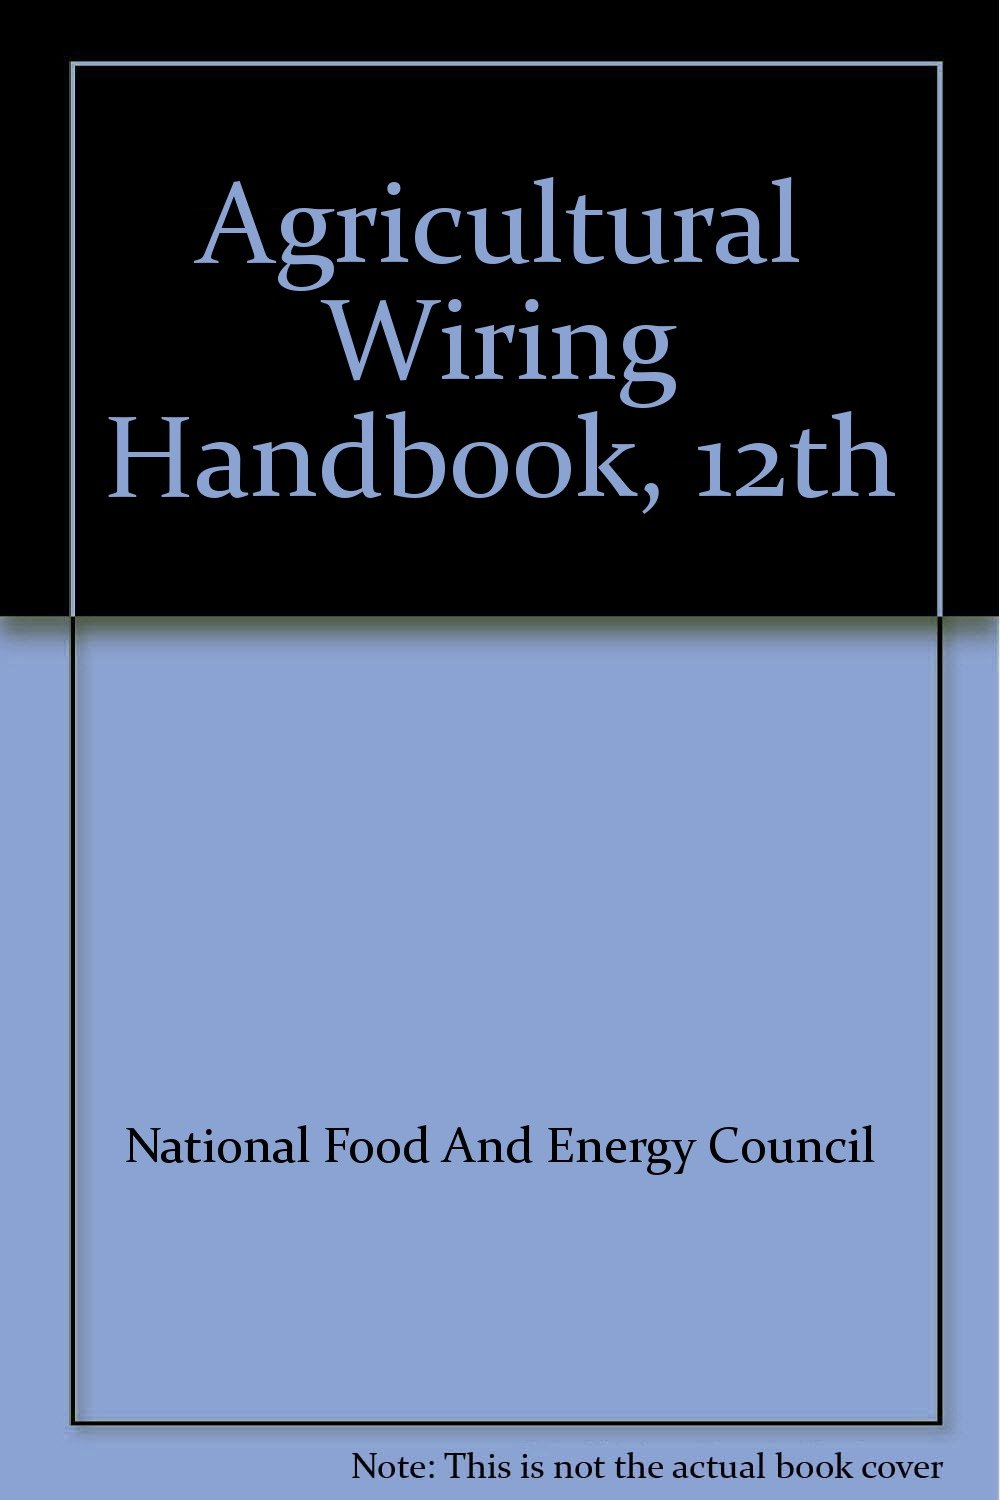 agricultural wiring handbook 12th national food and energy council rh amazon com writing handbook for kids electrical wiring handbook